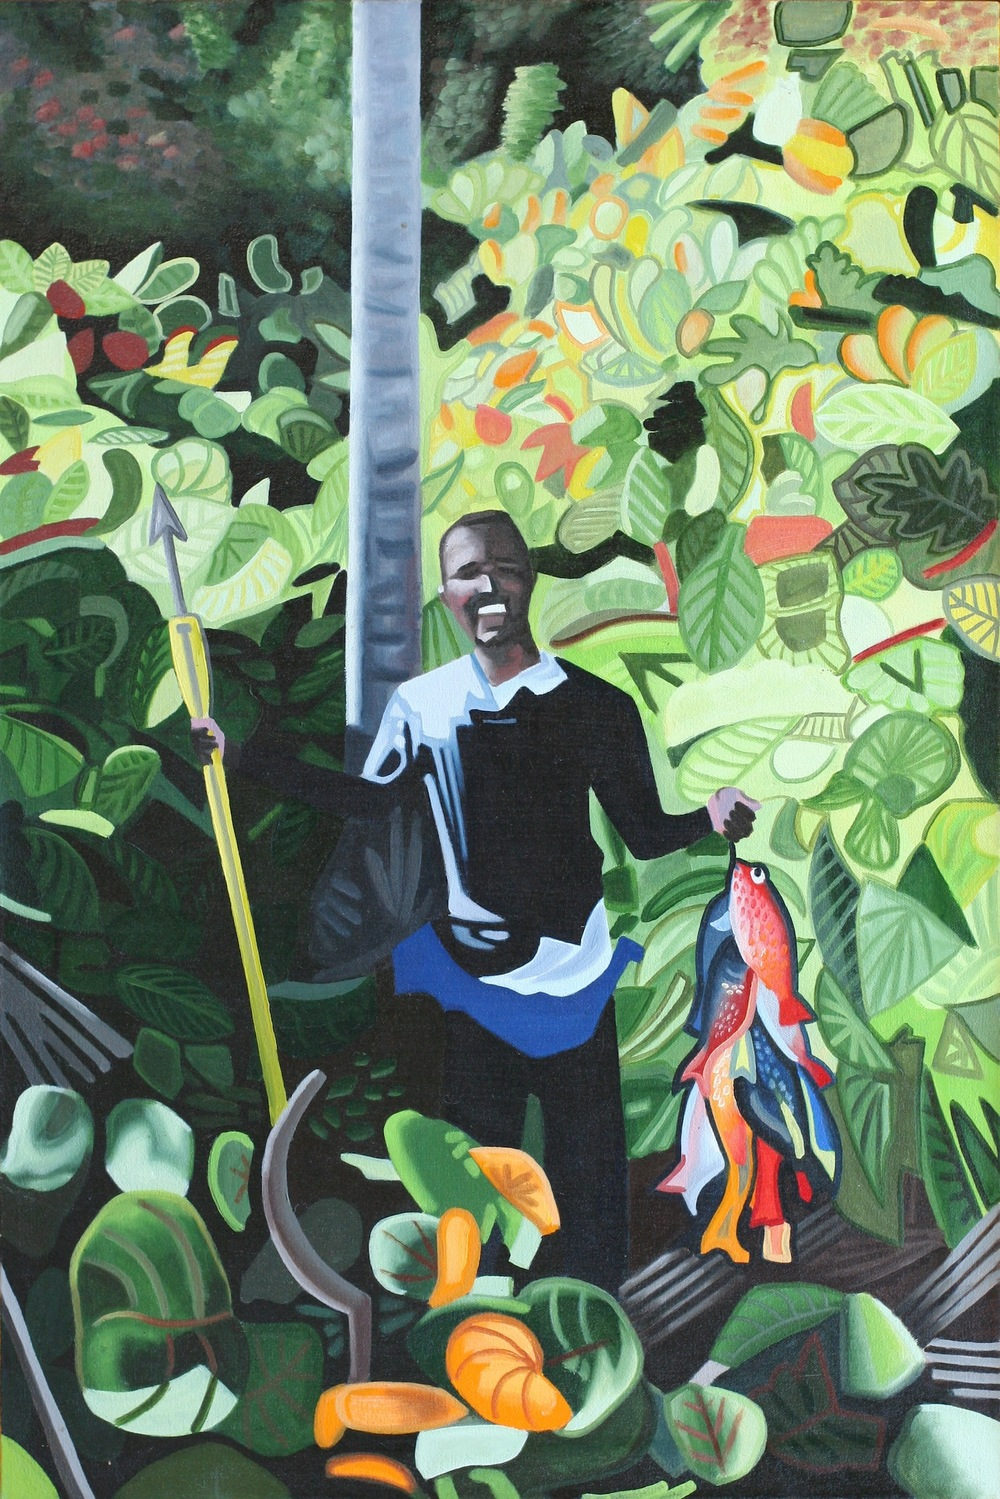 "Self-employed - oil on canvas - 36"" x 25"" - 2002"